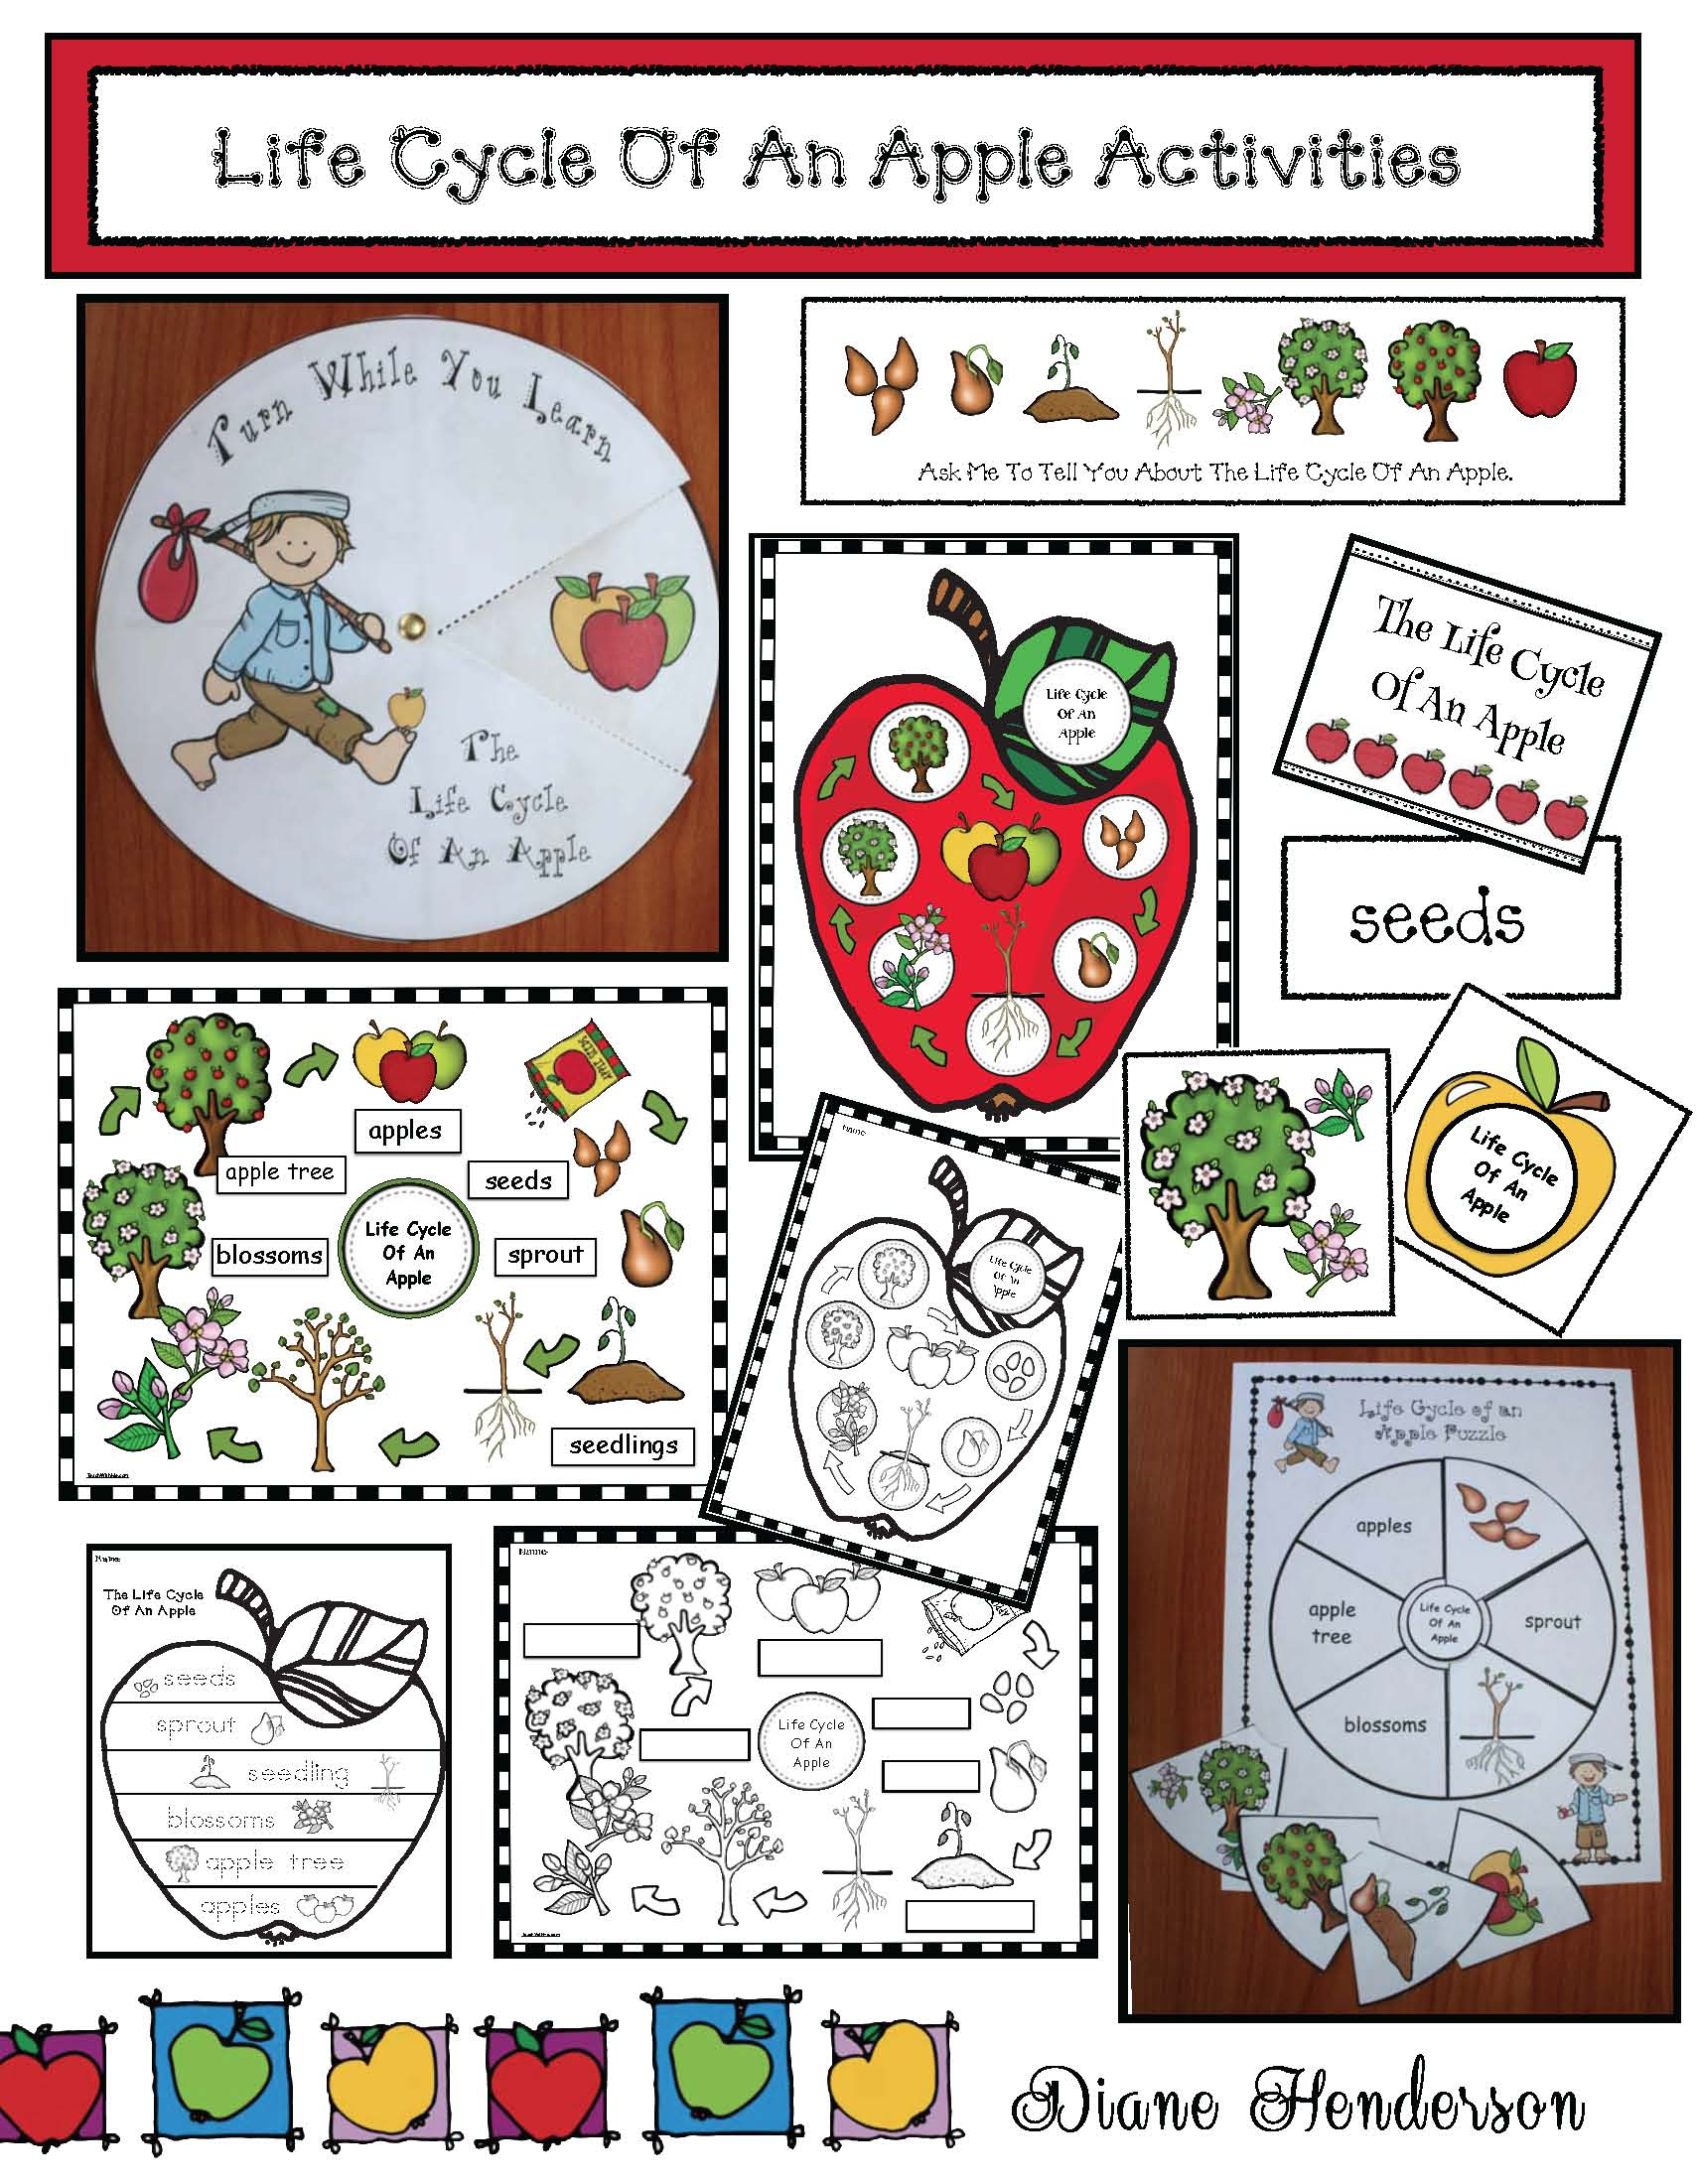 life cycle of an apple activities, life cycle of an apple crafts, life cycle of an apple centers, apple crafts, apple centers, 4 seasons activities, 4 seasons  of my apple tree activites